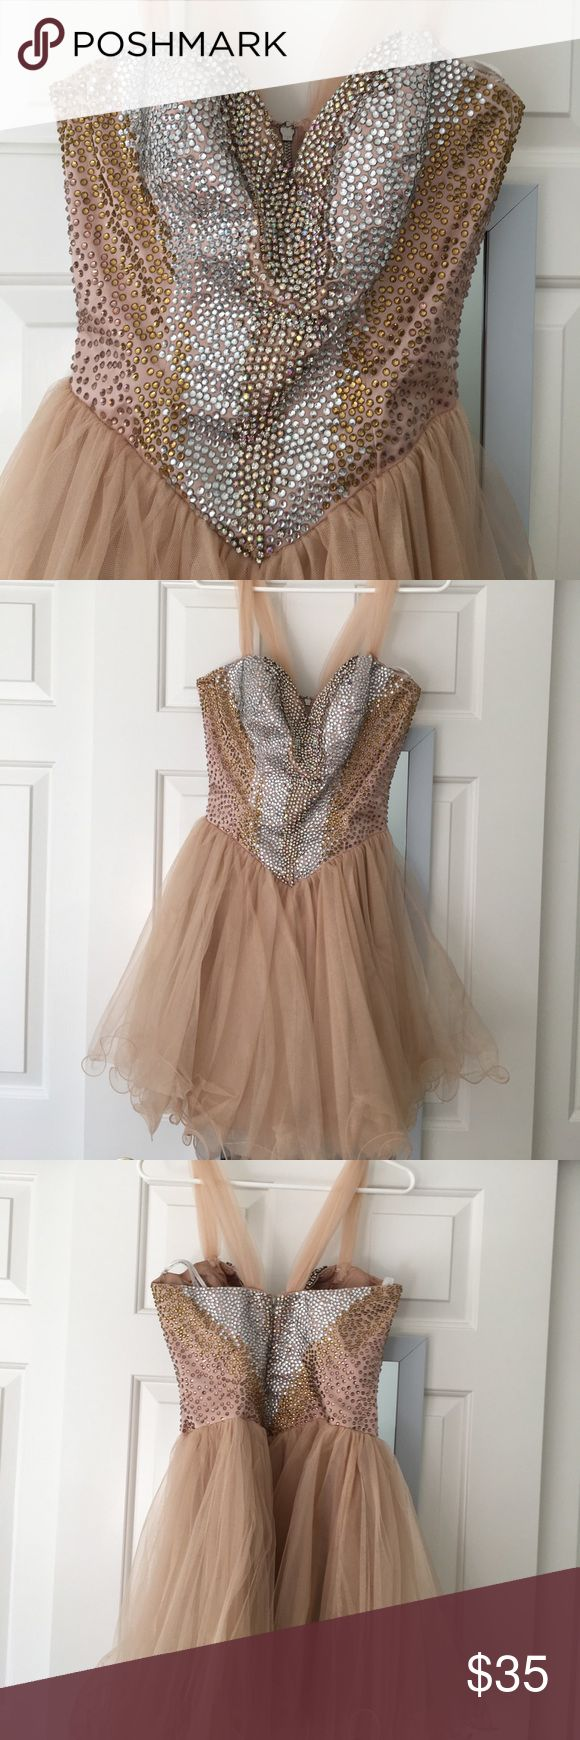 Sherri Hill cocktail dress size 8 Beautiful Sherri Hill dress worn by my daughter to a junior dance.  Sheer straps added and plunge bust closed to comply with dress code.  Both can be removed.  Only two rose gold rhinestones missing and they are on the side and back.  Lots of glitz.  Priced very well for the one and done dress wearer. Sherri Hill Dresses Mini